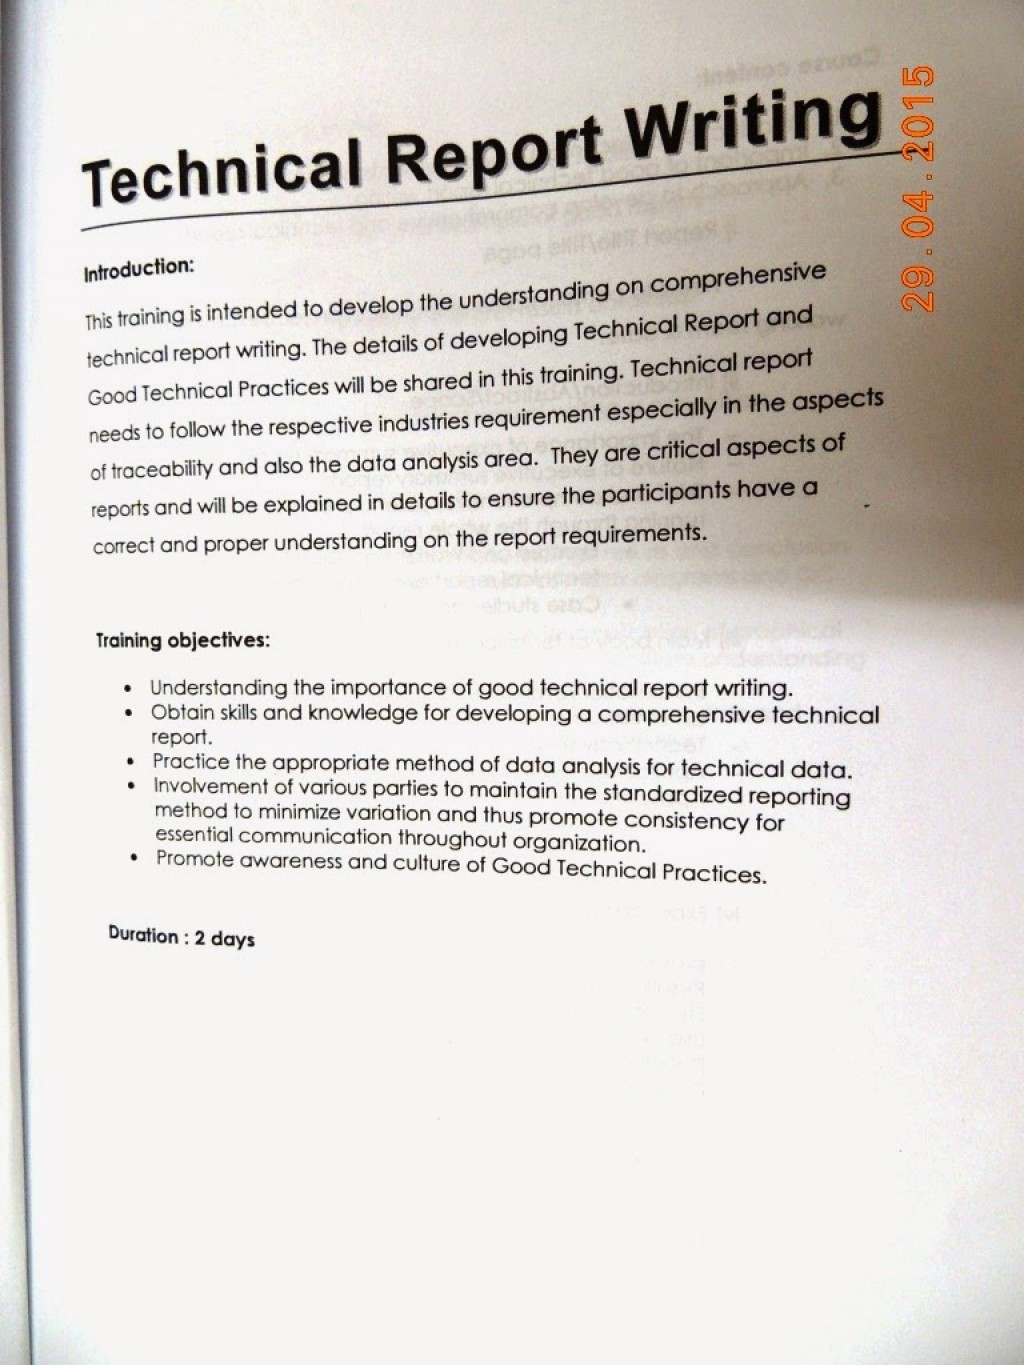 007 Research Paper Technicalreportwritingjennyliewexperience2 Jpg Example Of In Technical Wonderful Writing Large